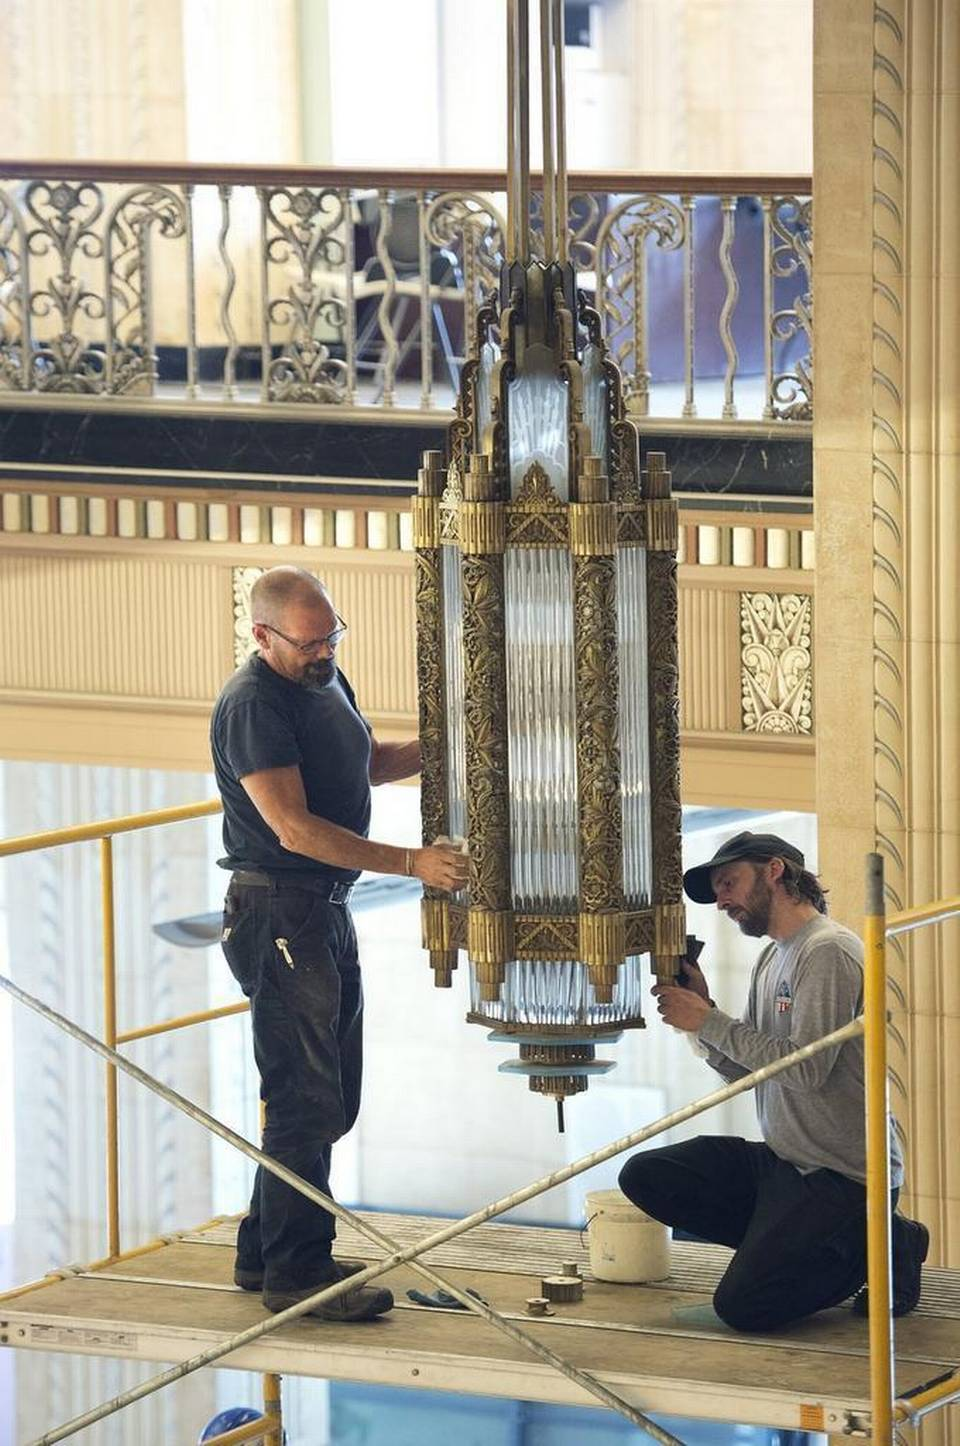 Matt & Robert refinishing chandeliers